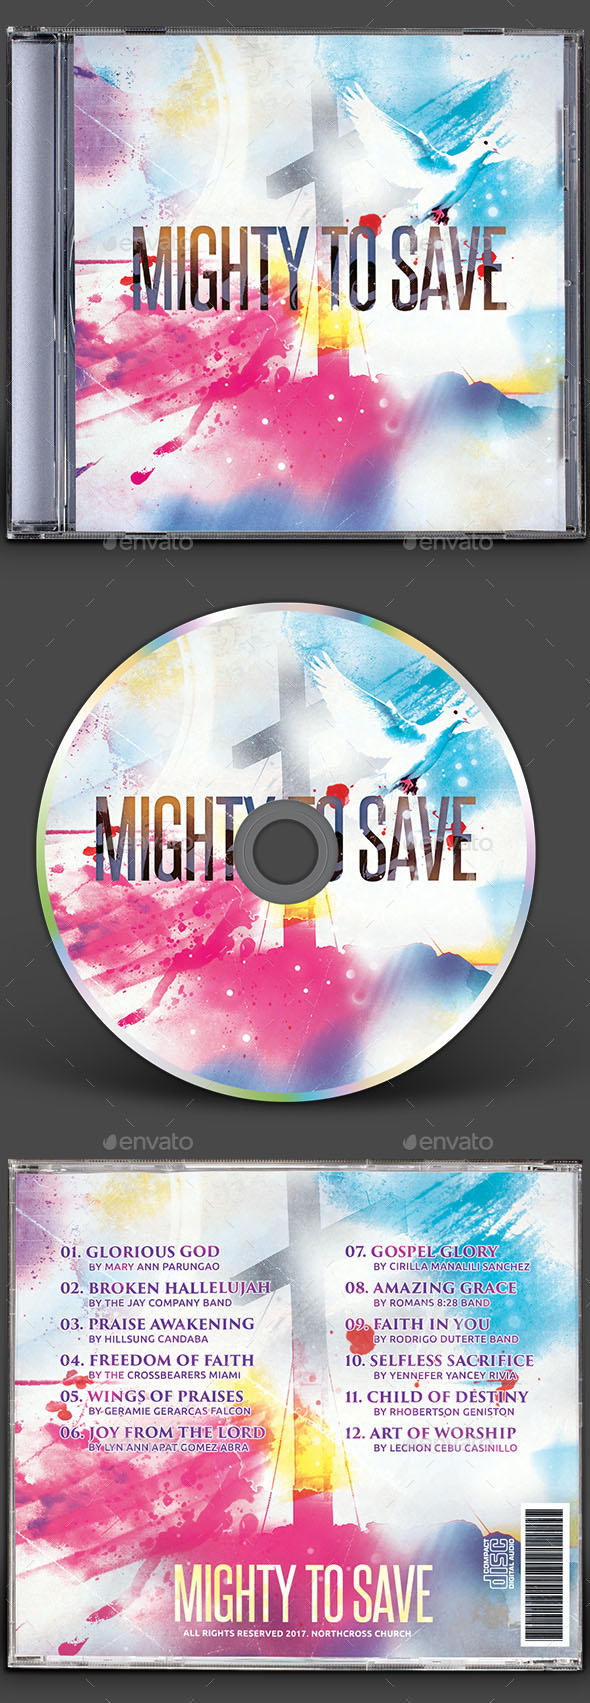 80+ Best Templates of CD DVD Covers (PSD) | Free & Premium Download